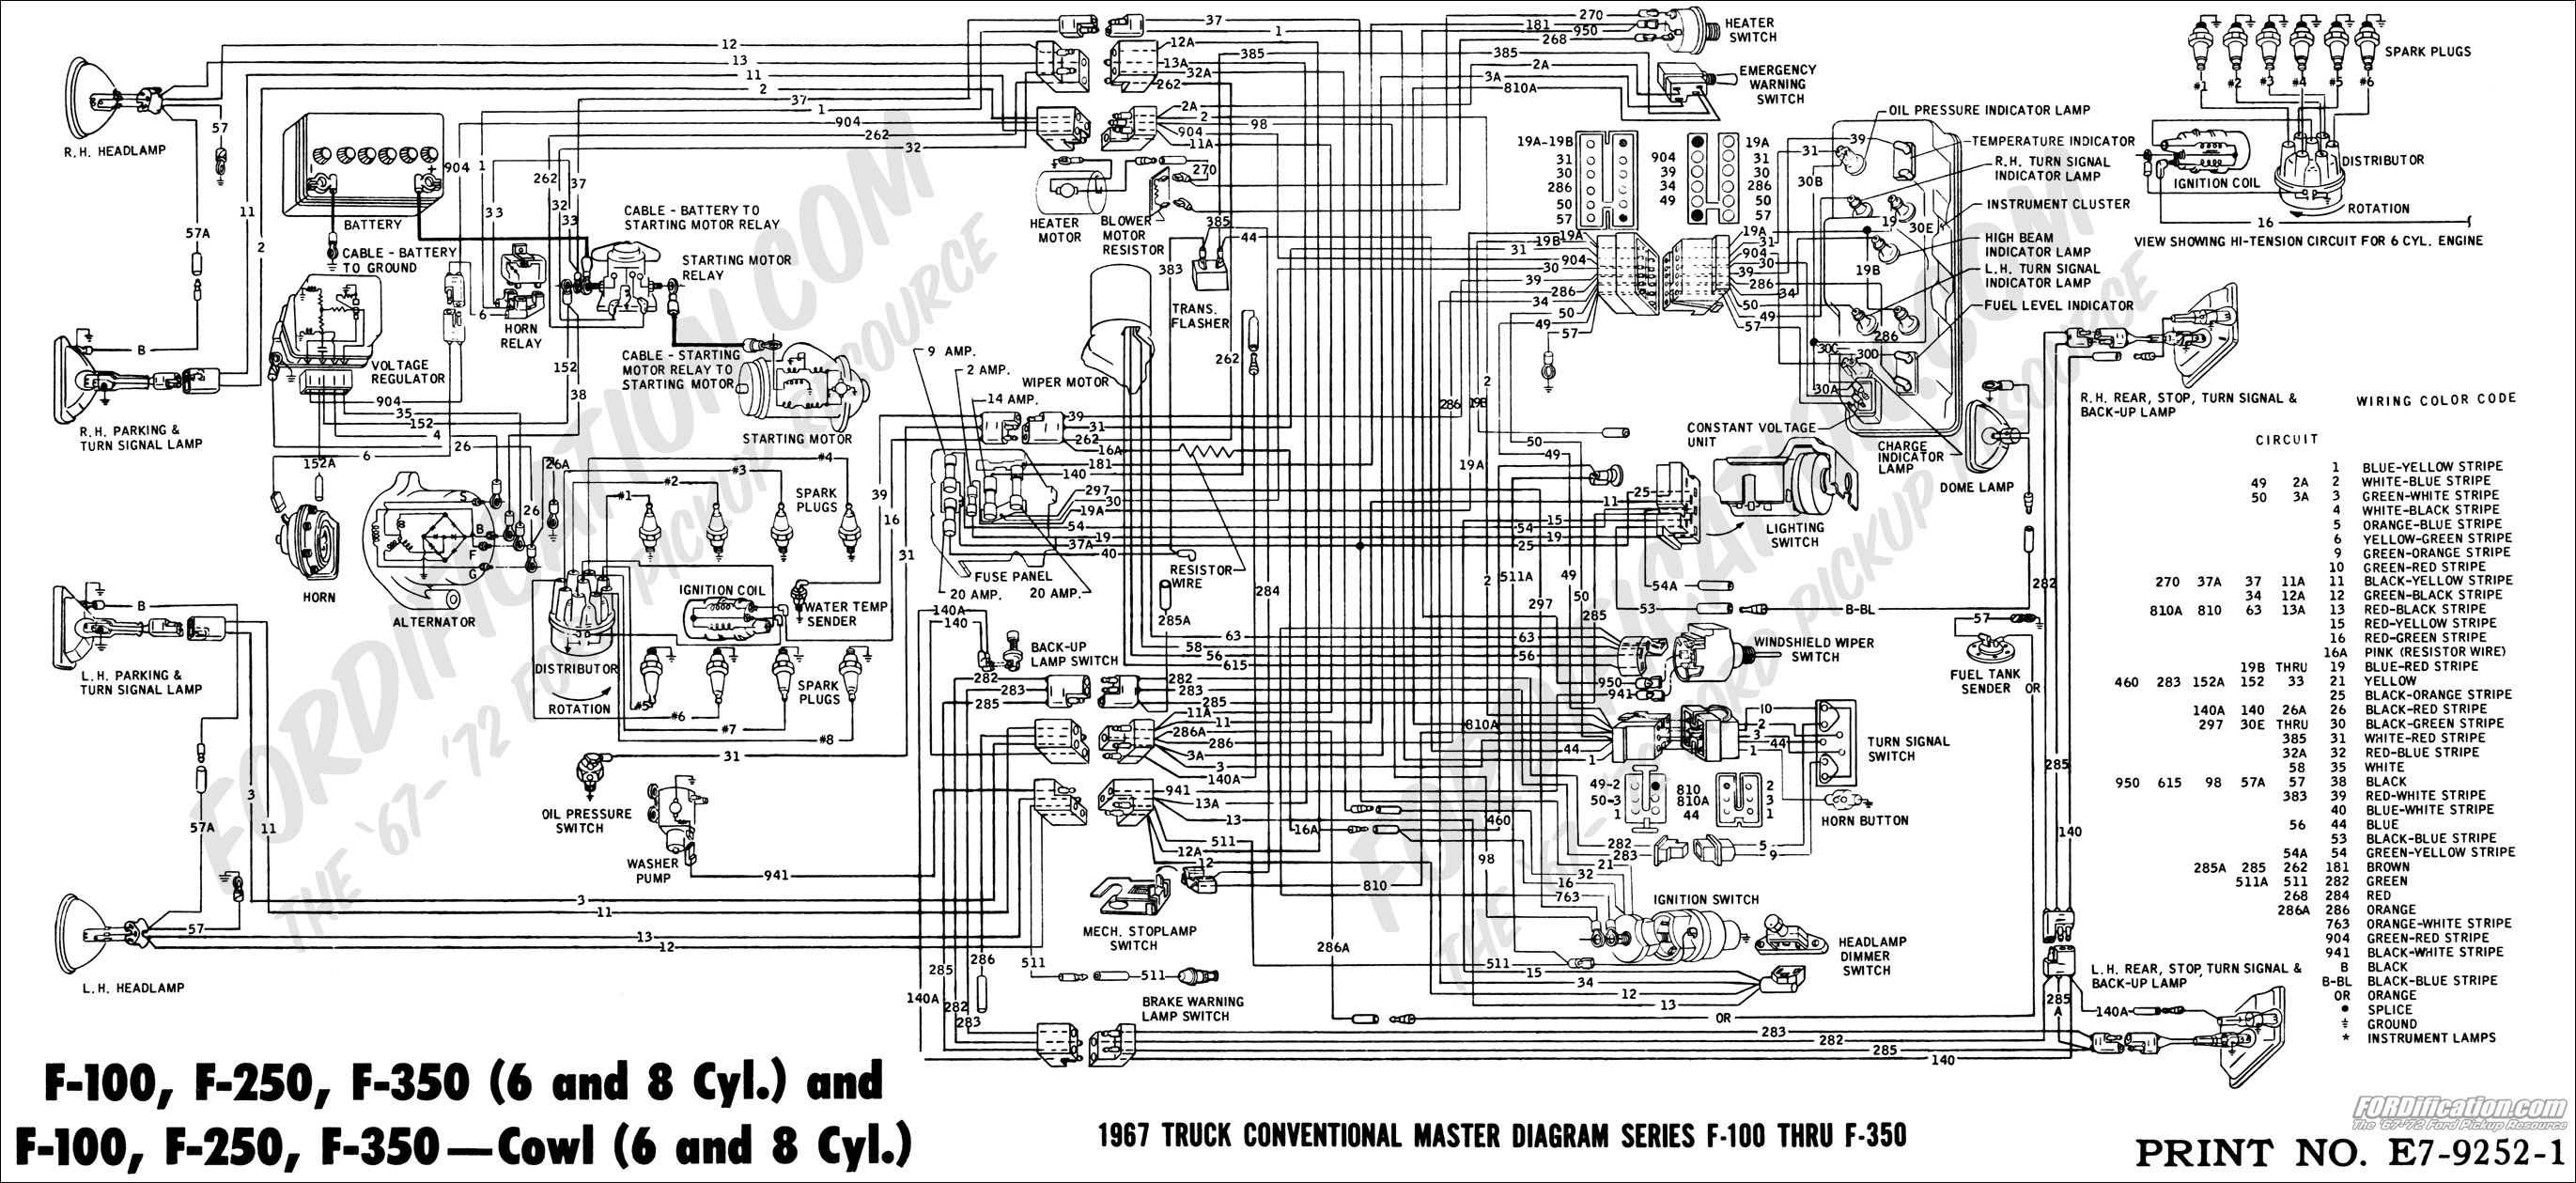 2007 Ford Ignition Wiring Diagram The Portal And Forum Of Escape Engine Truck Third Level Rh 20 15 Jacobwinterstein Com Focus